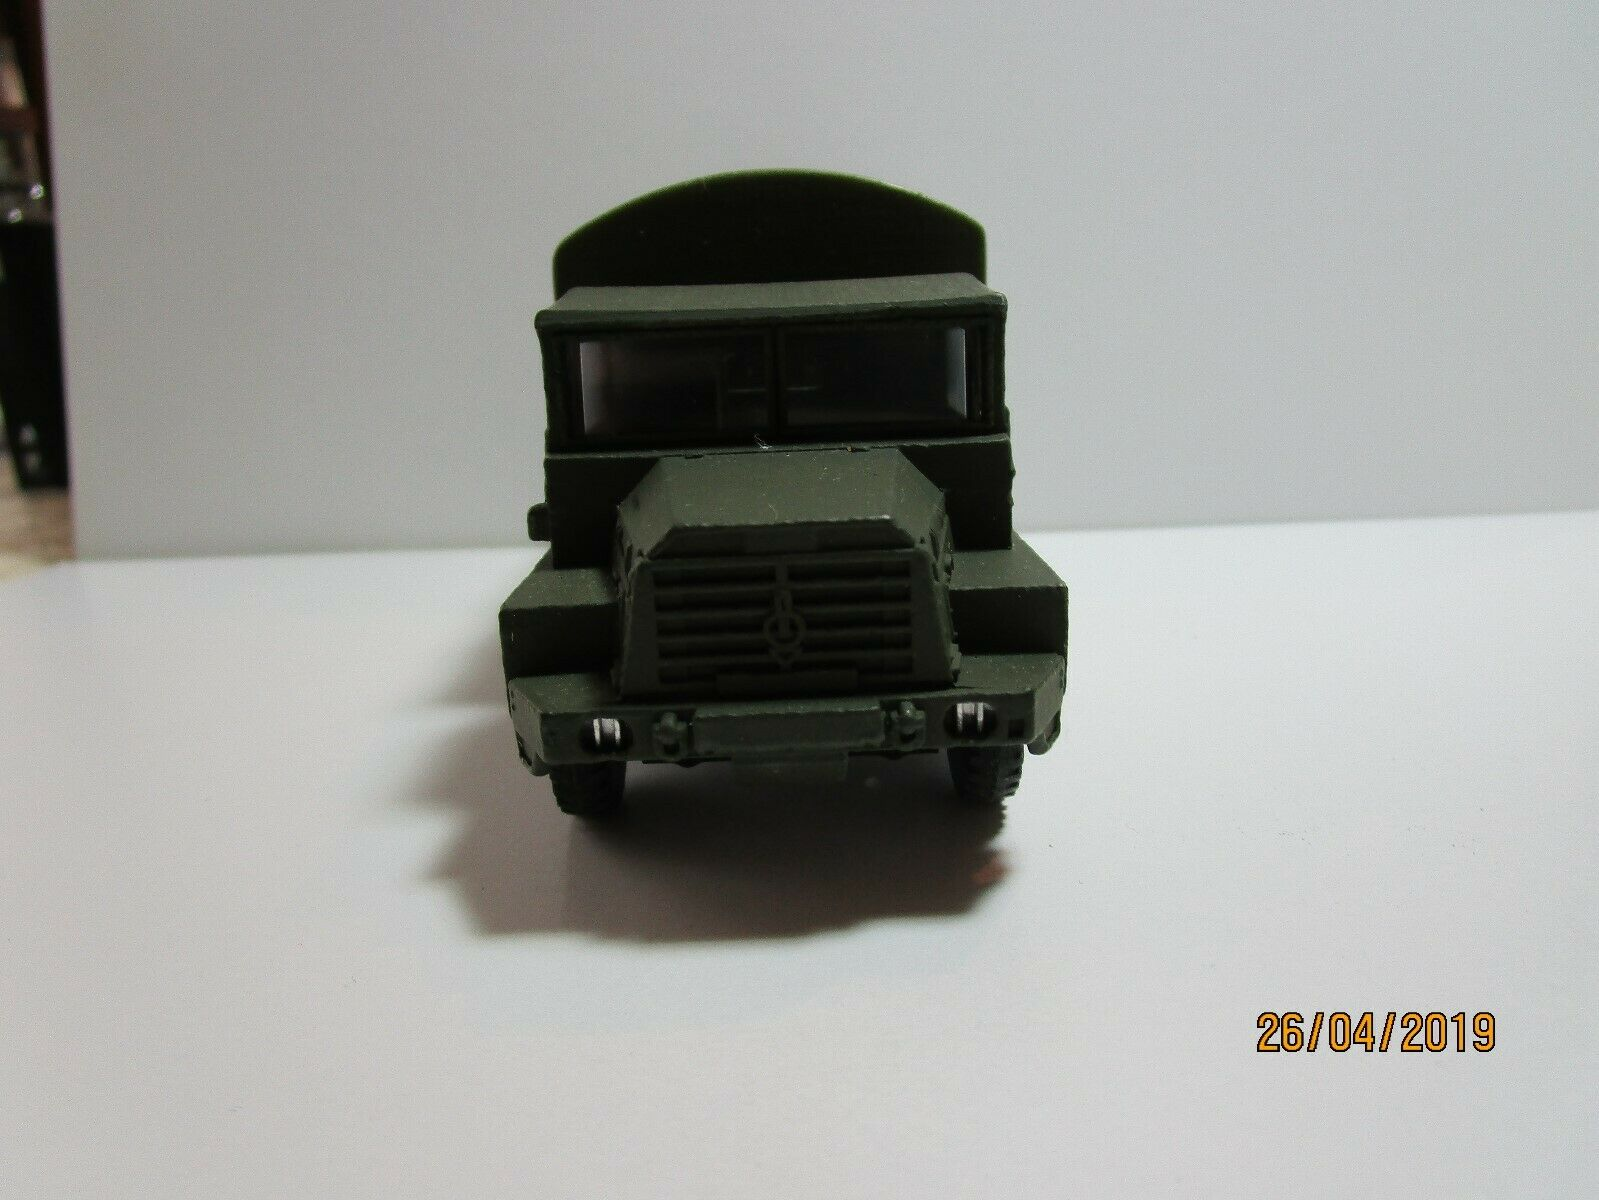 French Dinky toy militaire 824  GAZELLE  BERLIET Armée camion boxed Comme neuf